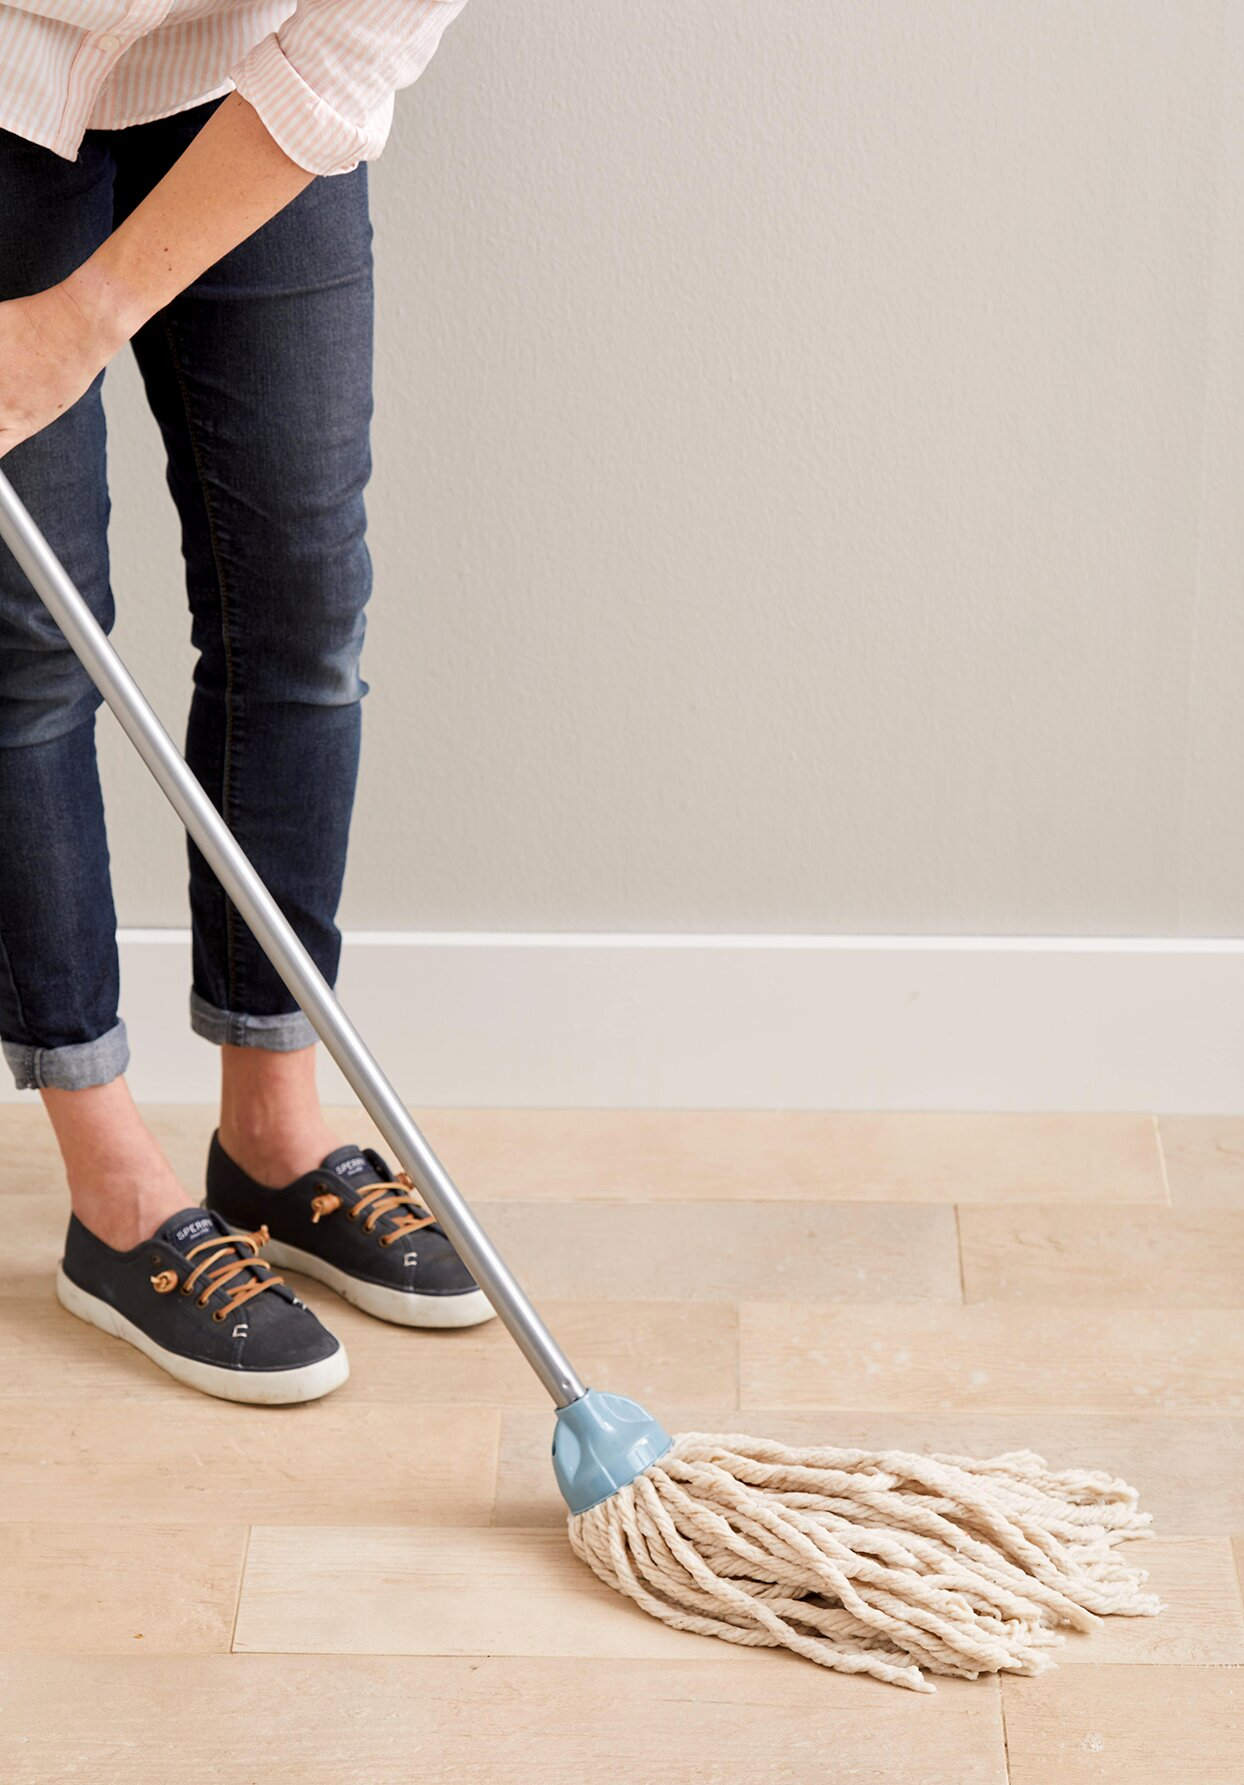 Person mopping floor with string mop